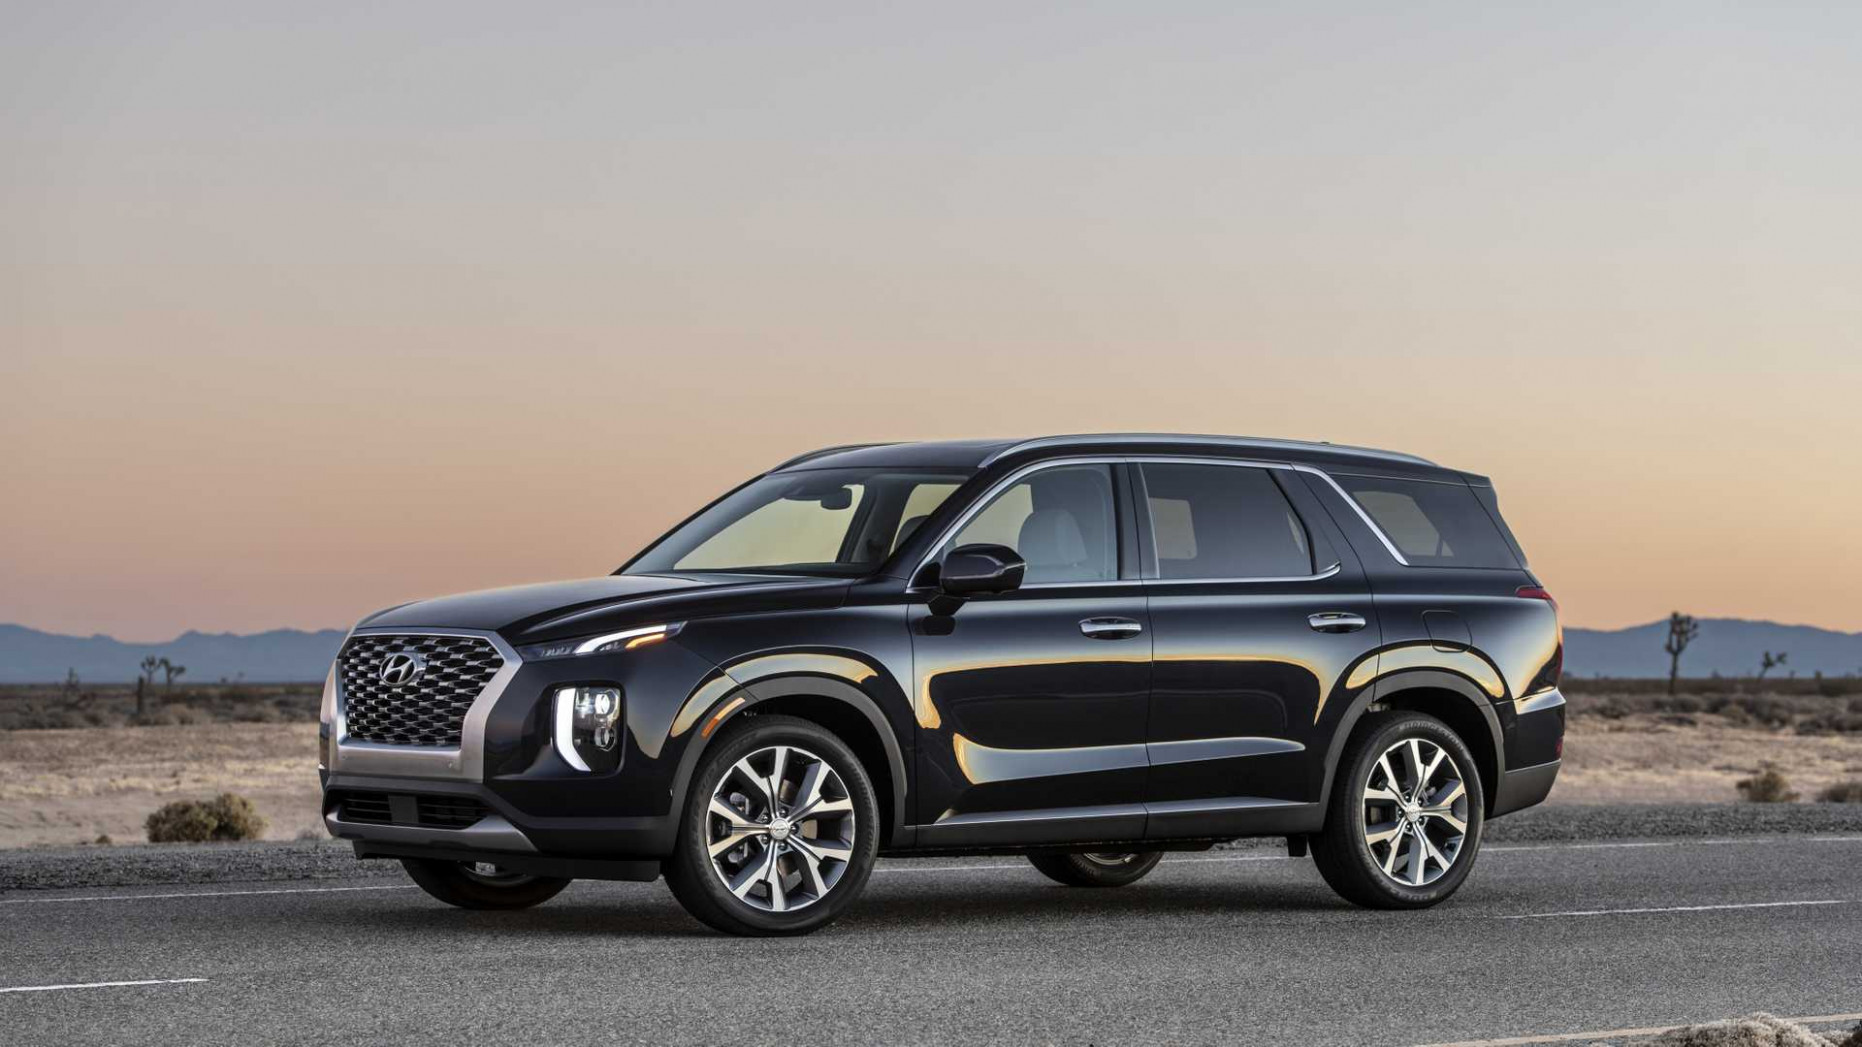 Watch: Hyundai's most luxurious vehicle, Palisade 8 | Q Motor